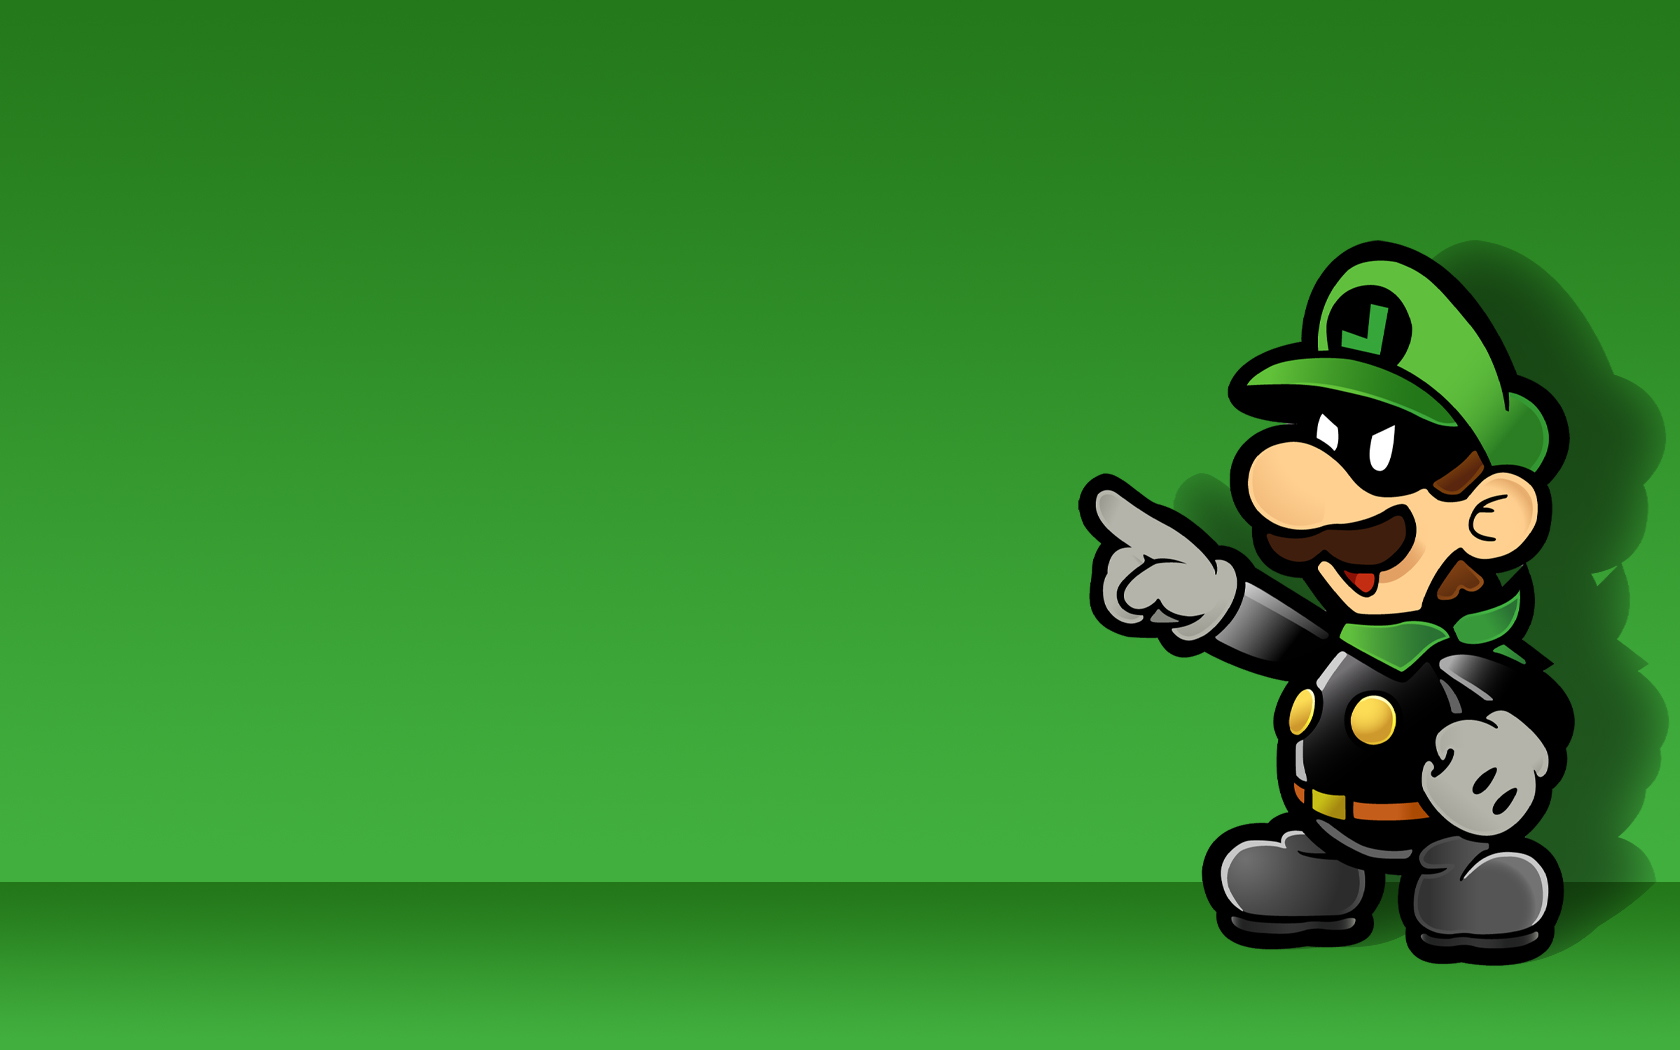 Mario clipart wall Abyss 58 Wallpaper Backgrounds Luigi